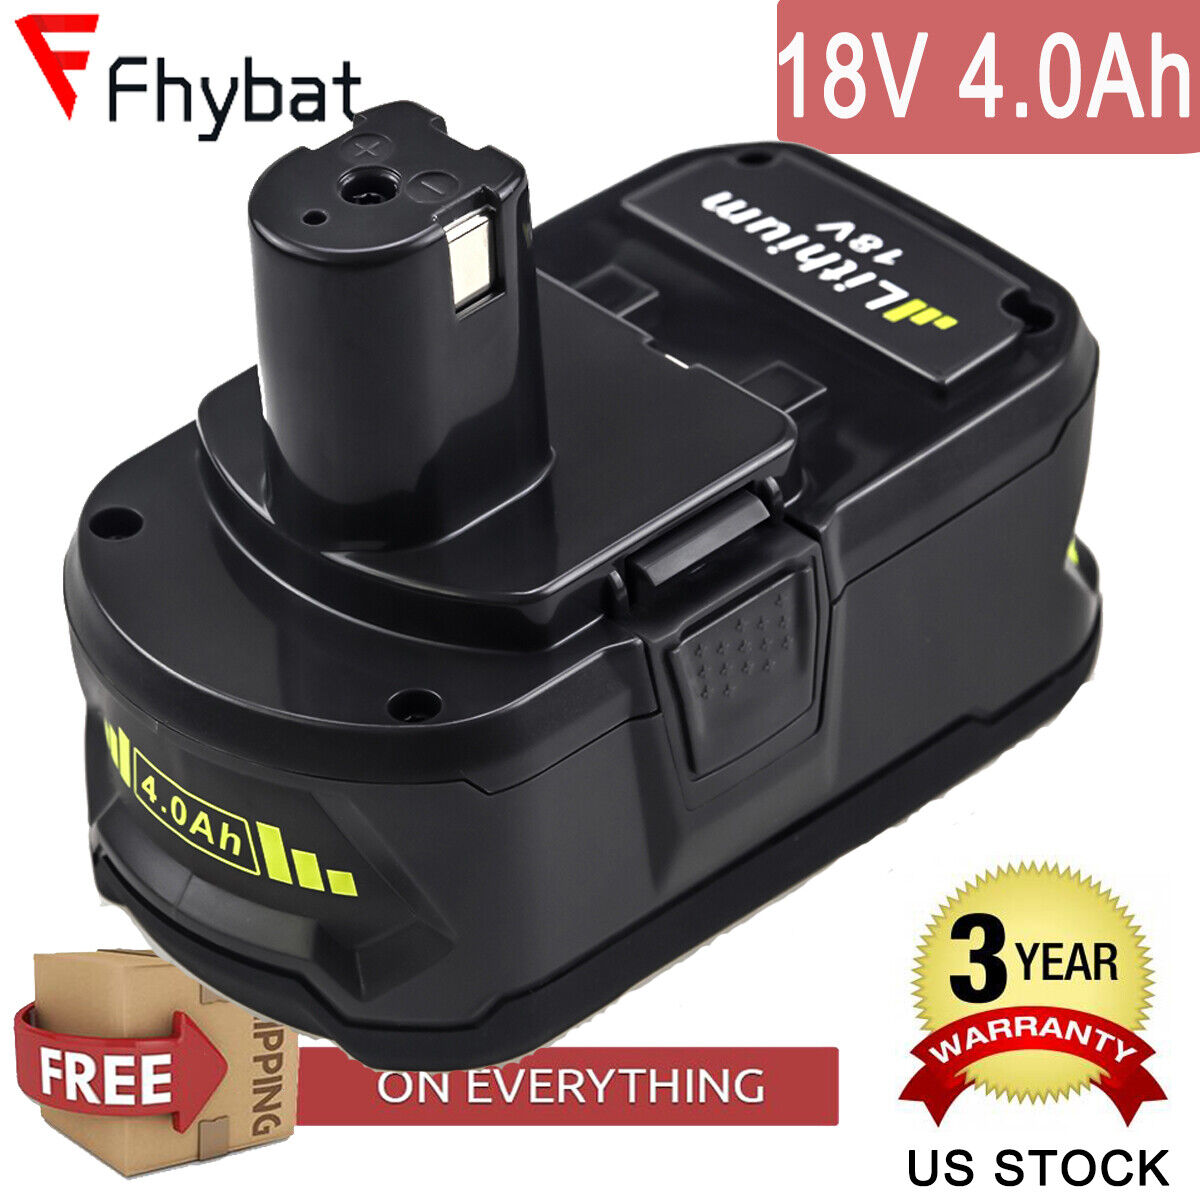 Ryobi P108 4AH One+ High Capacity Lithium Ion Battery For Ry